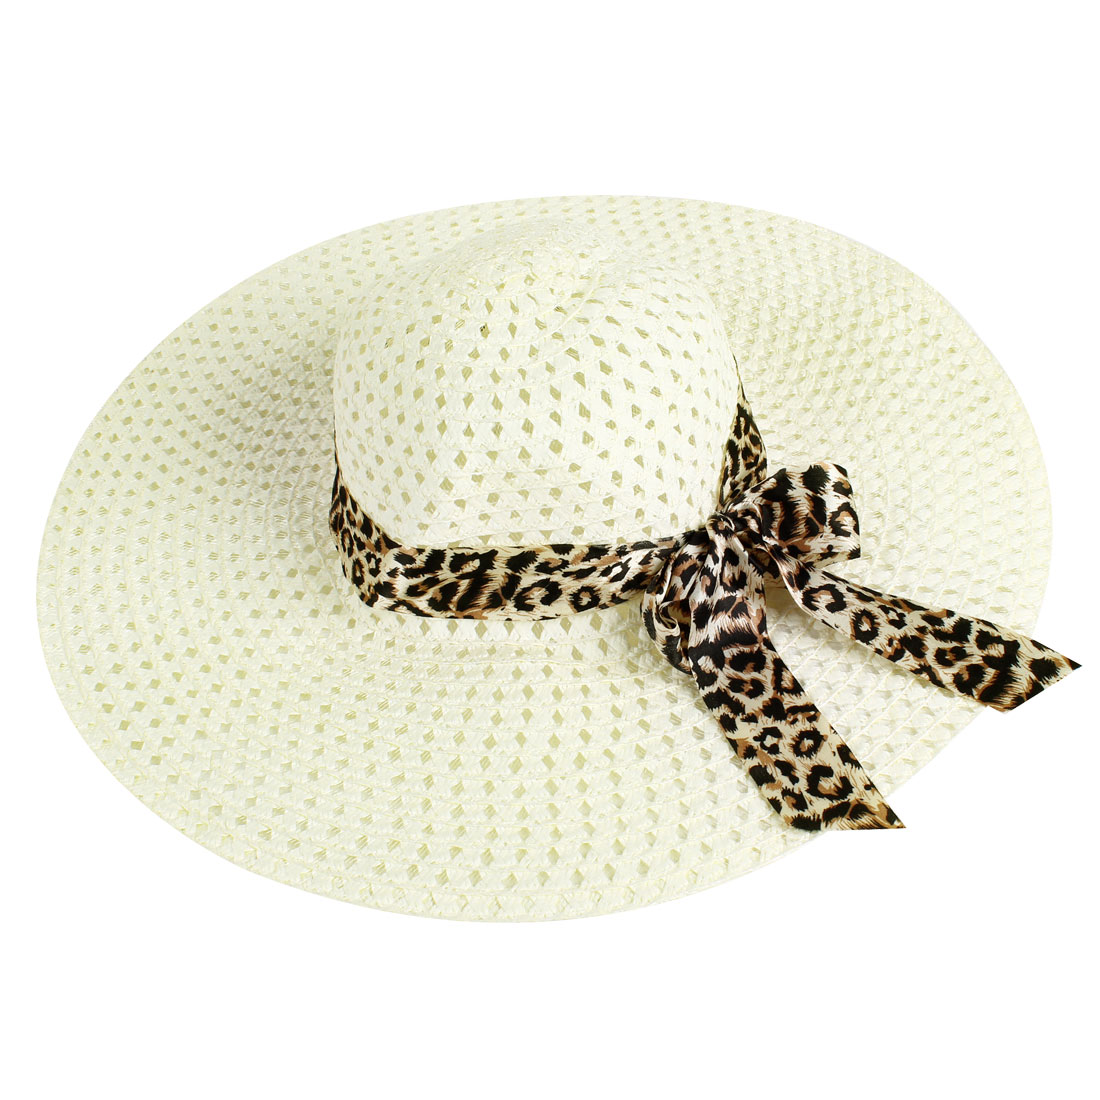 Black Brown Bowknot Strap Hollow Out Design White Beige Sun Hat for Lady